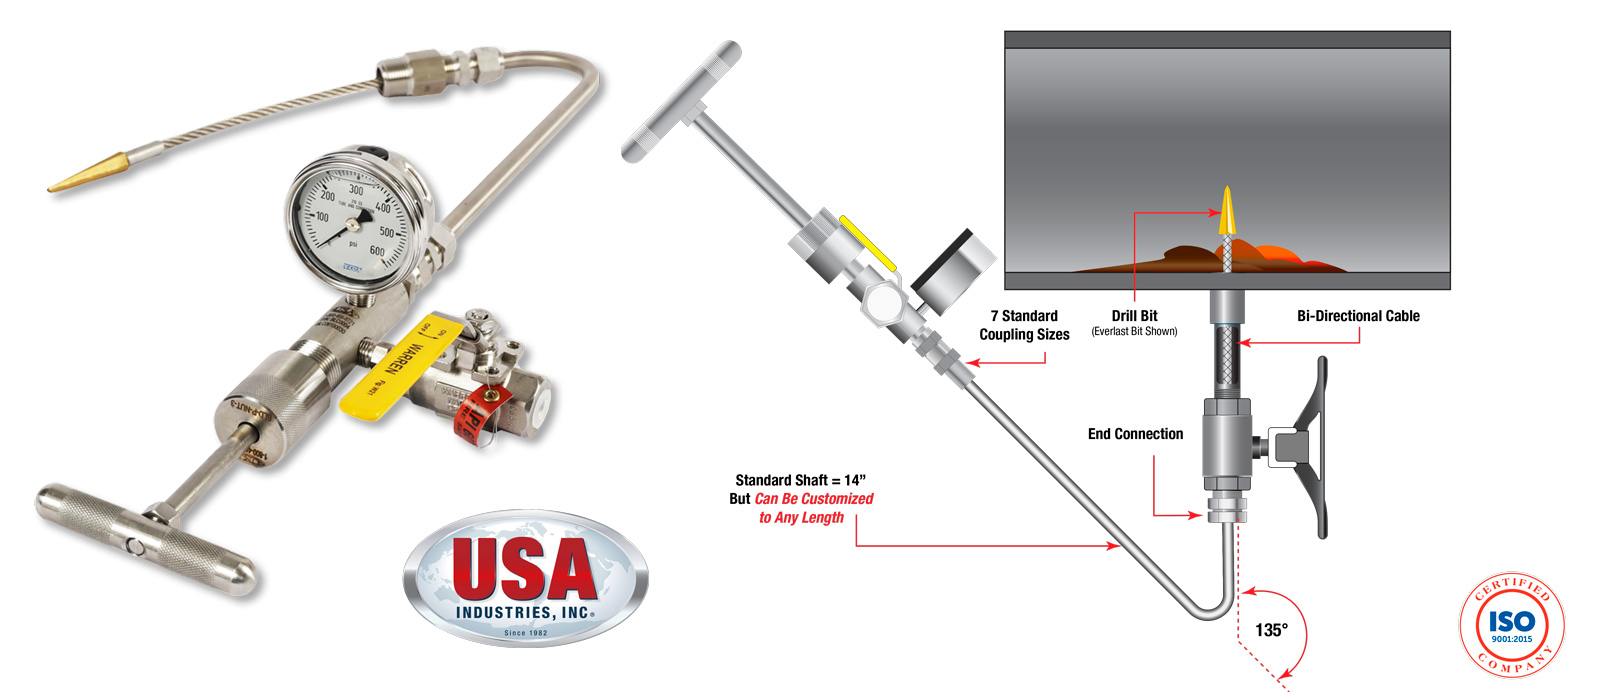 USA-Industries-Inc-Rod-Out-Tool-Bleeder-Cleaner-Illustration-Added-v2